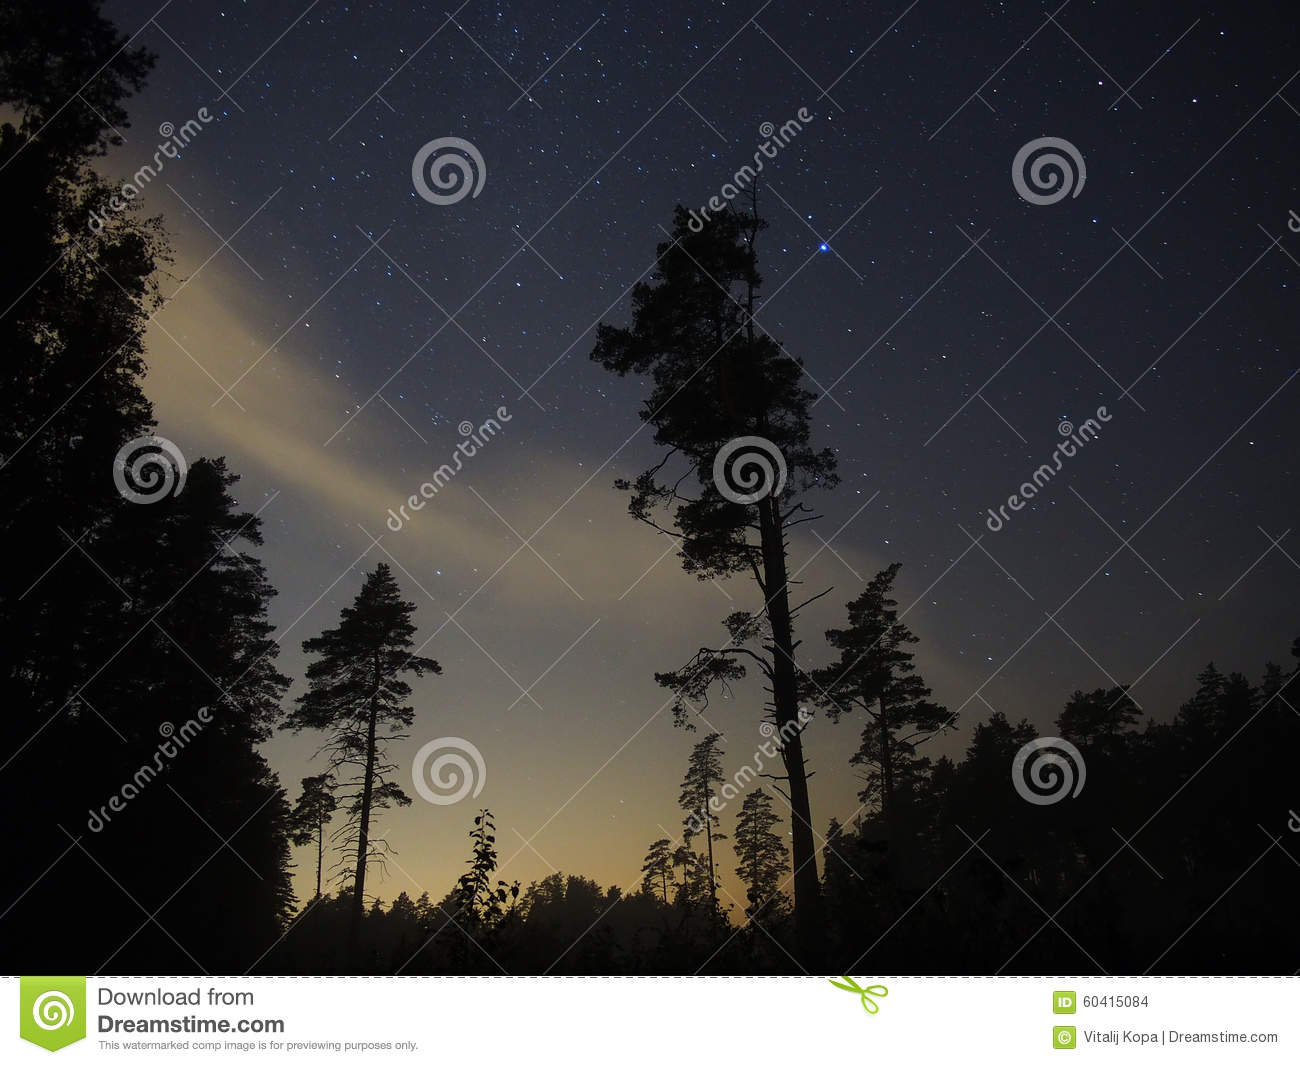 Night sky stars over forest and trees